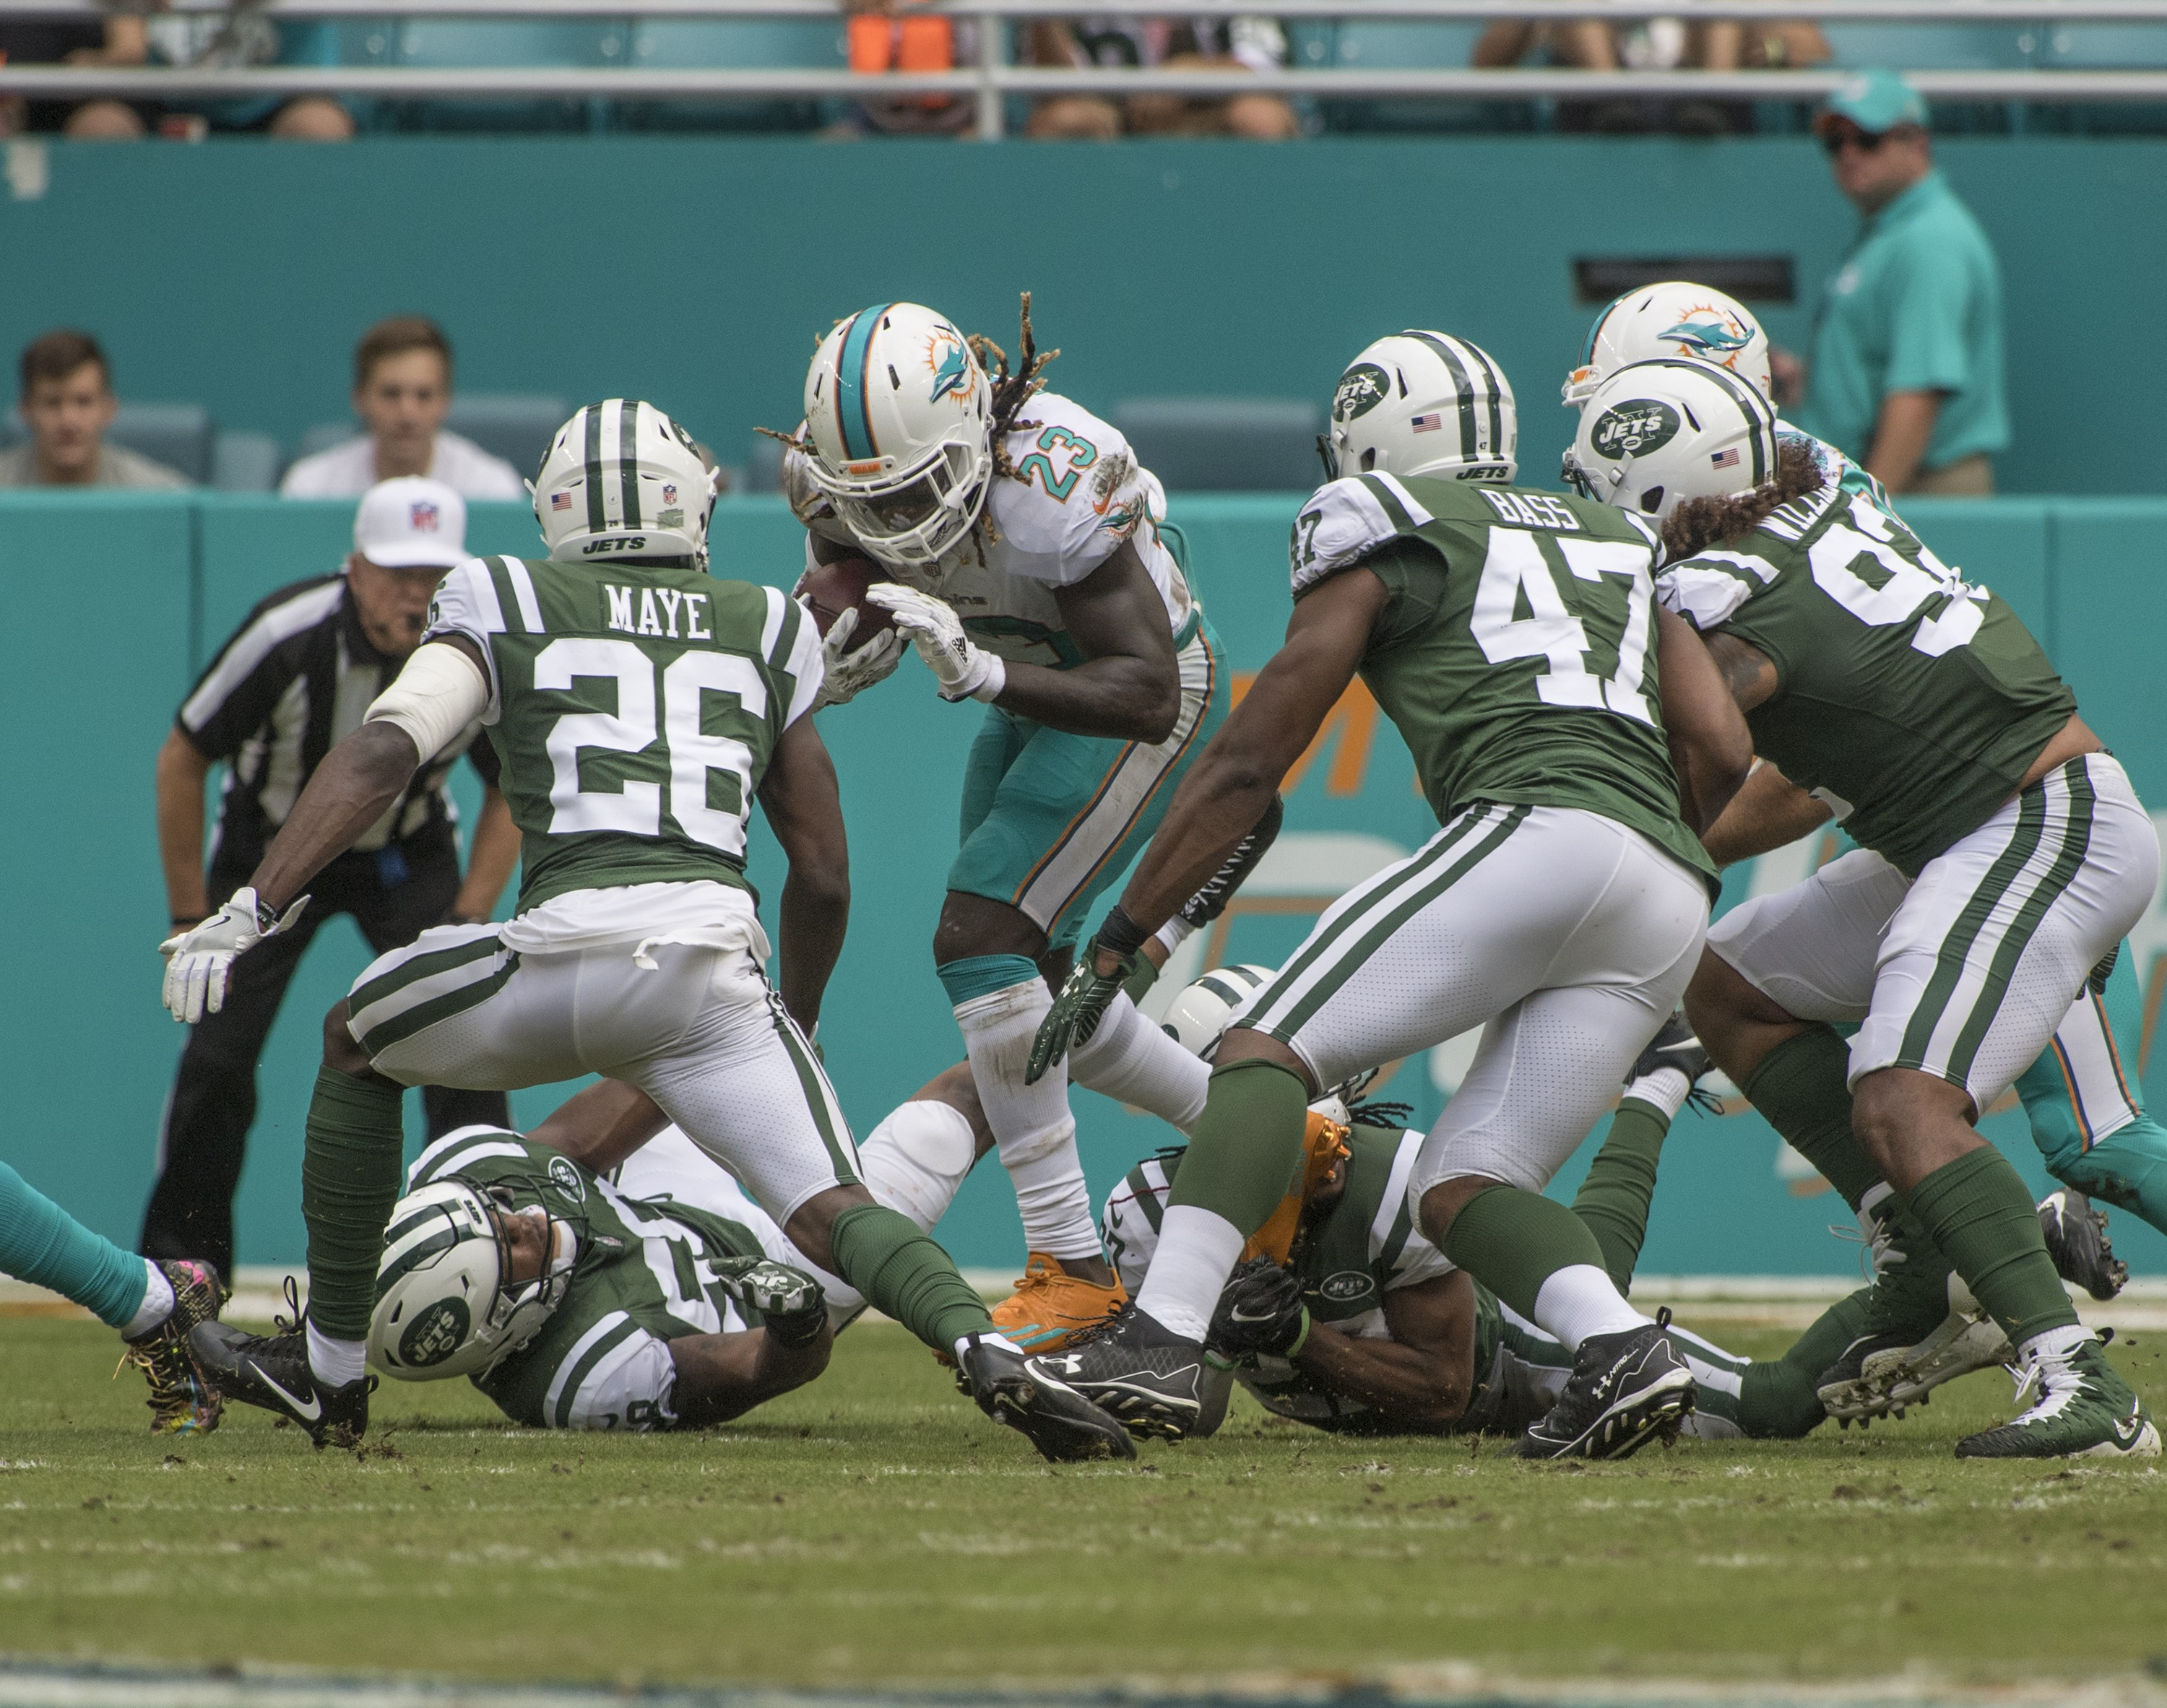 Miami Dolphins running back Jay Ajayi (23) runs the ball as New York Jets free safety Marcus Maye (26) defends during 1st half play of an NFL football game on Sunday, Oct. 22, 2017, in Miami Gardens, Fla. The Miami Dolphins went on to defeat the New York Jets 31-28. (Donald Edgar/El Latino Digital)